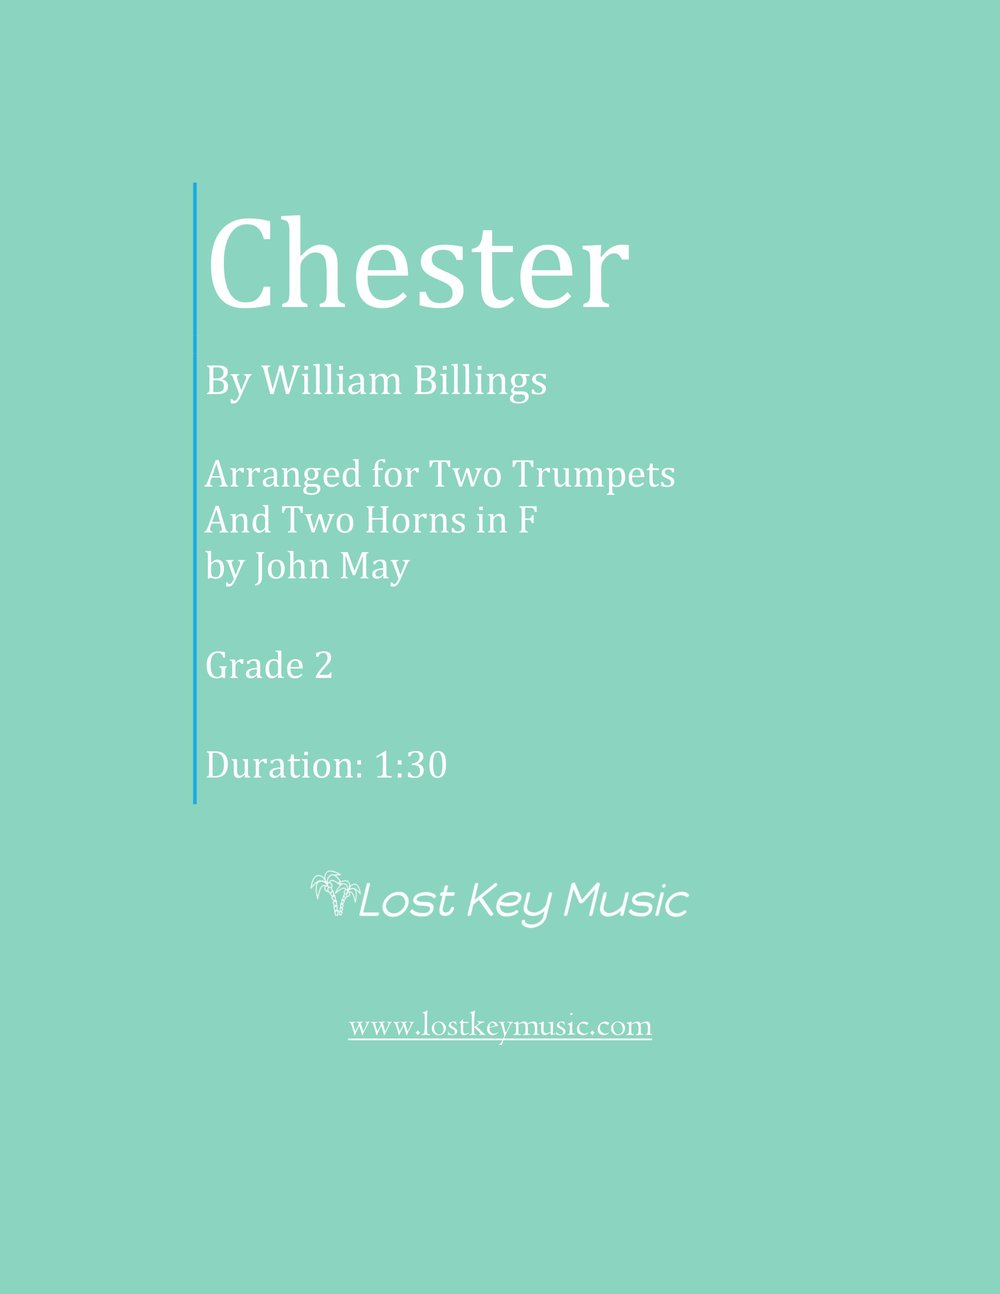 Chester-Cover Photo.jpg